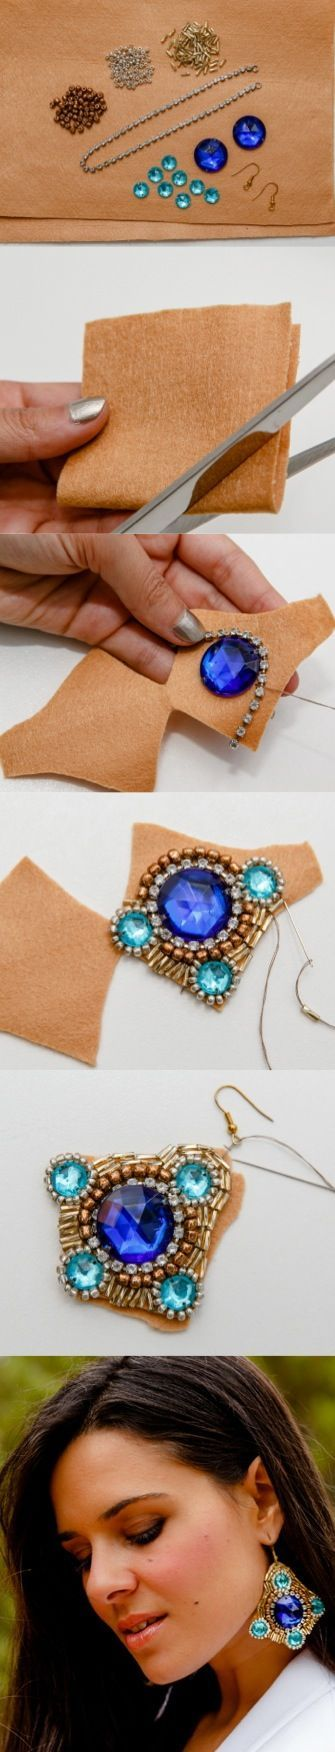 DIY Embellished Earrings